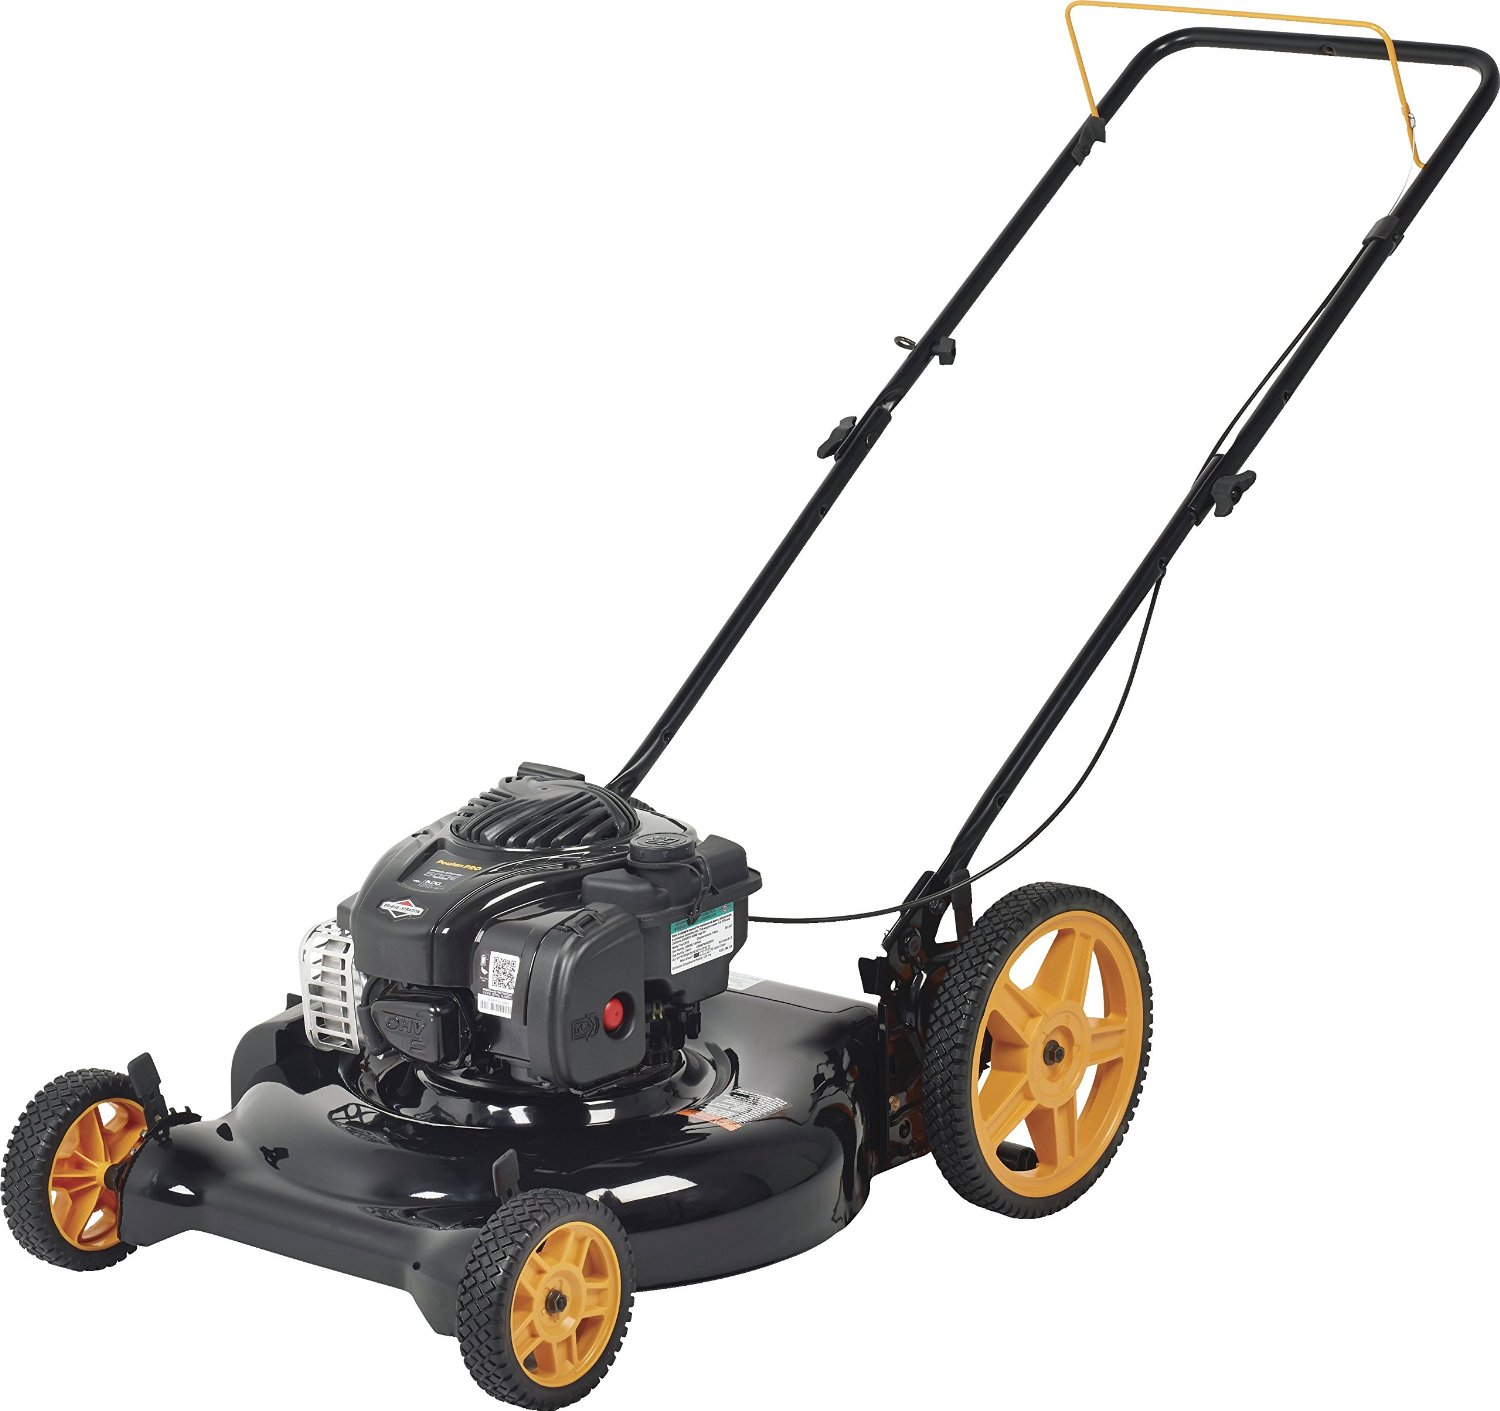 Poulan Pro Lawn Mower Pr500n21sh Review Top5lawnmowers Com